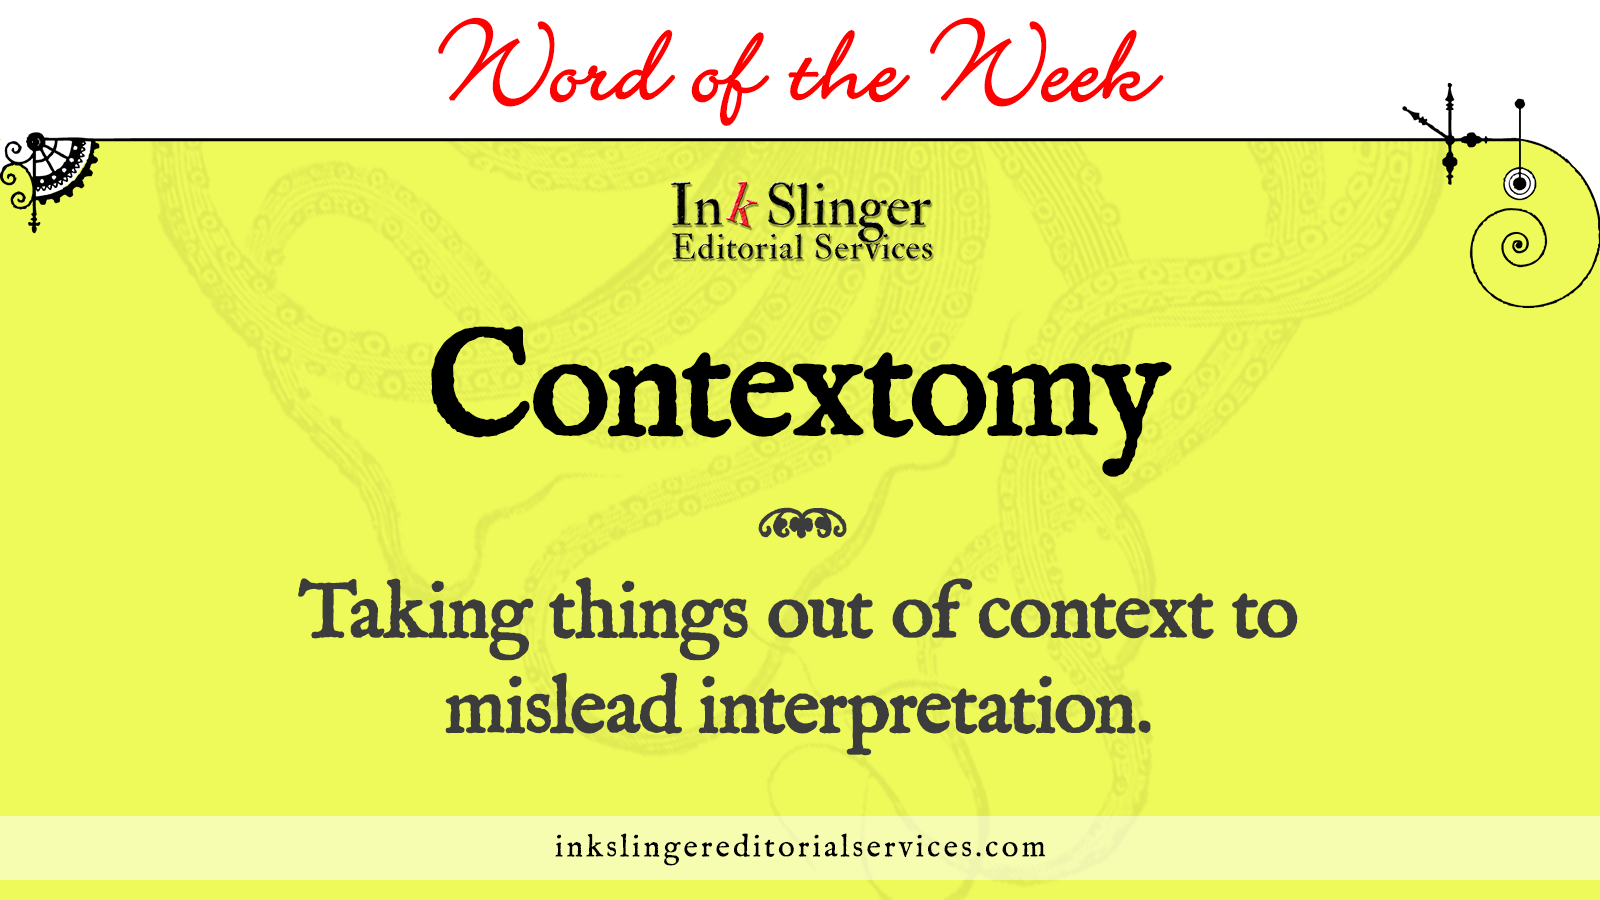 Word of the Week: Contextomy Taking things out of context to mislead interpretation.